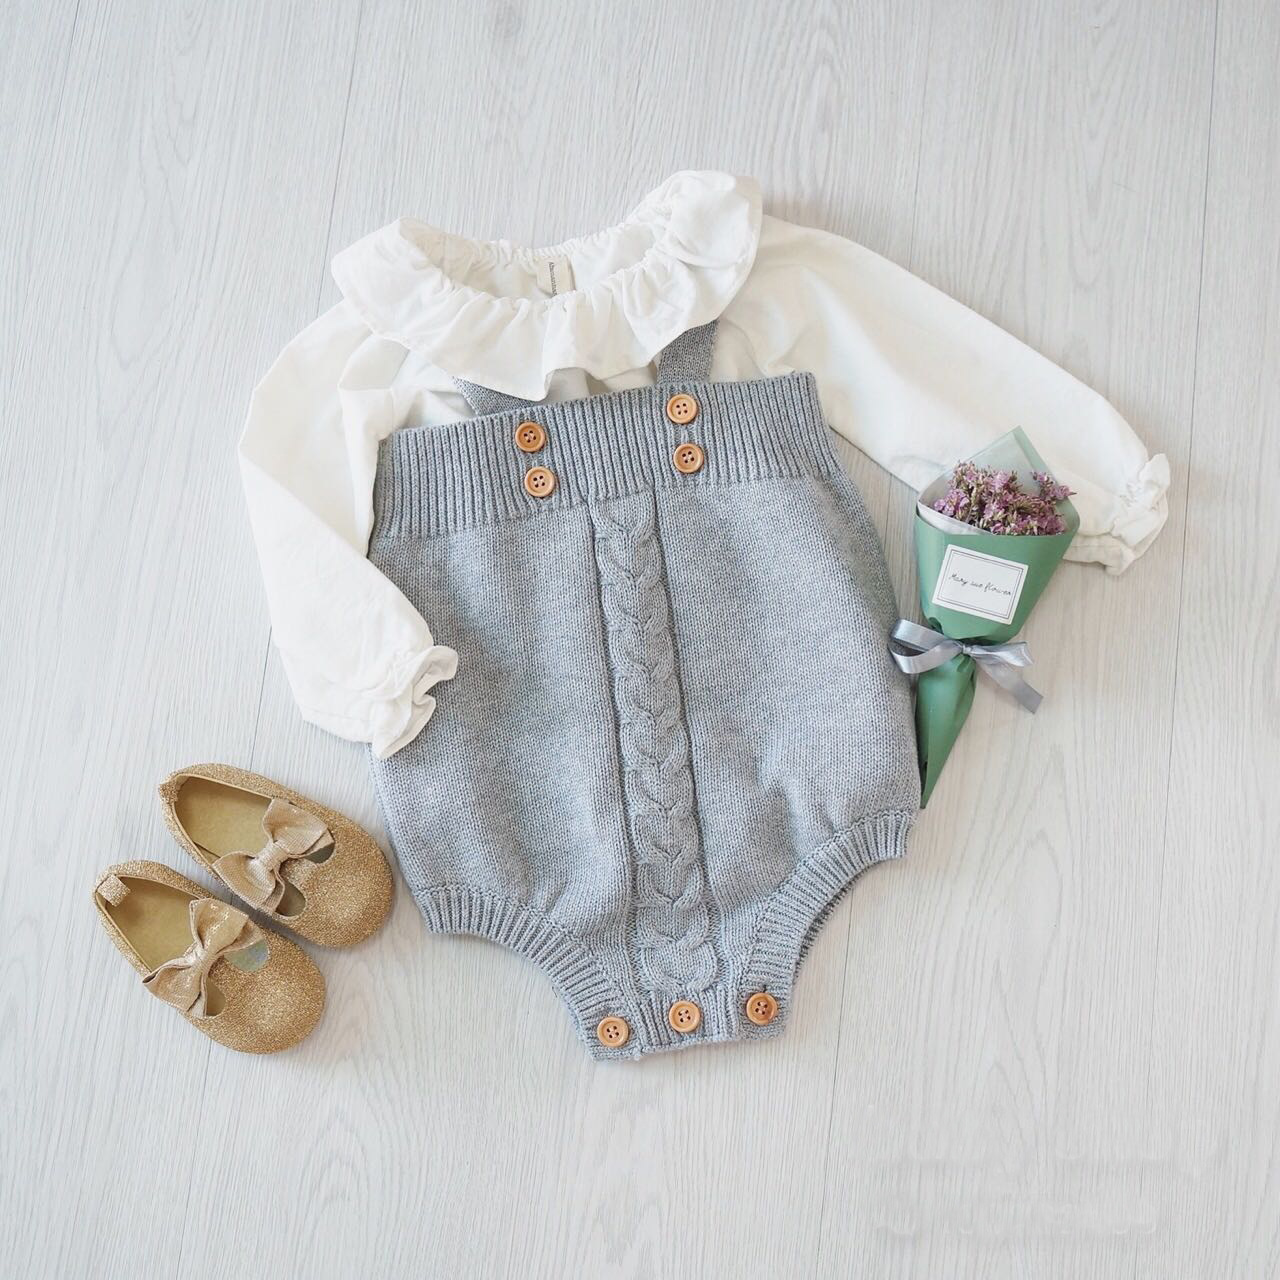 Ins hot style Children s clothing during the spring and autumn baby baby knitting jumpsuit dress